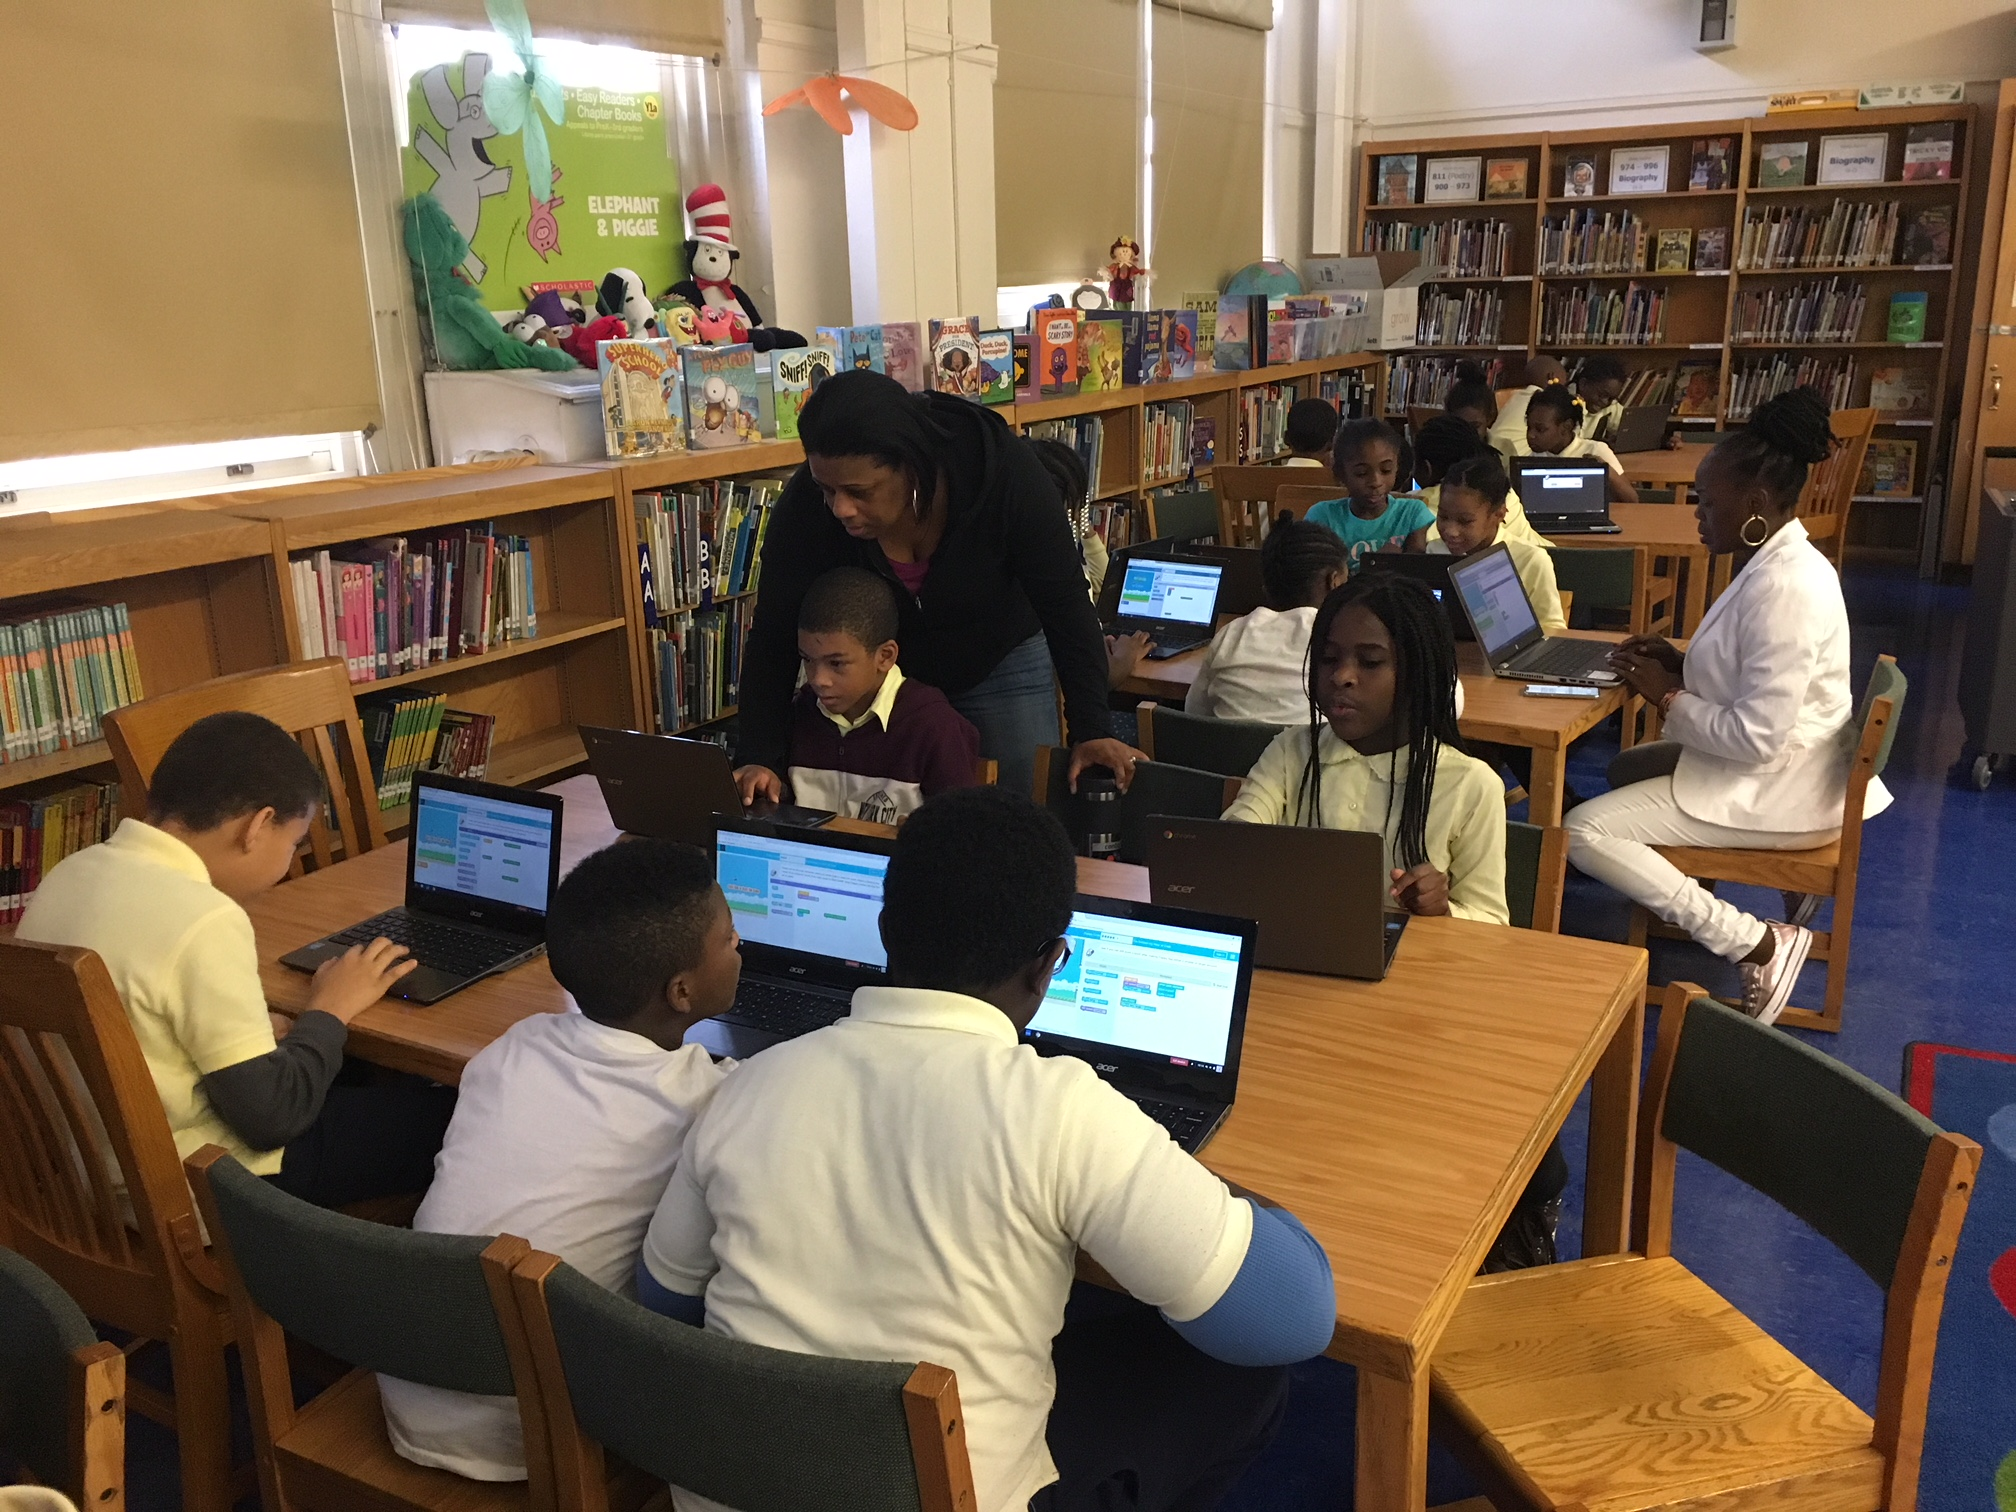 Ms. Spellman and students code a Flappy Game in the library